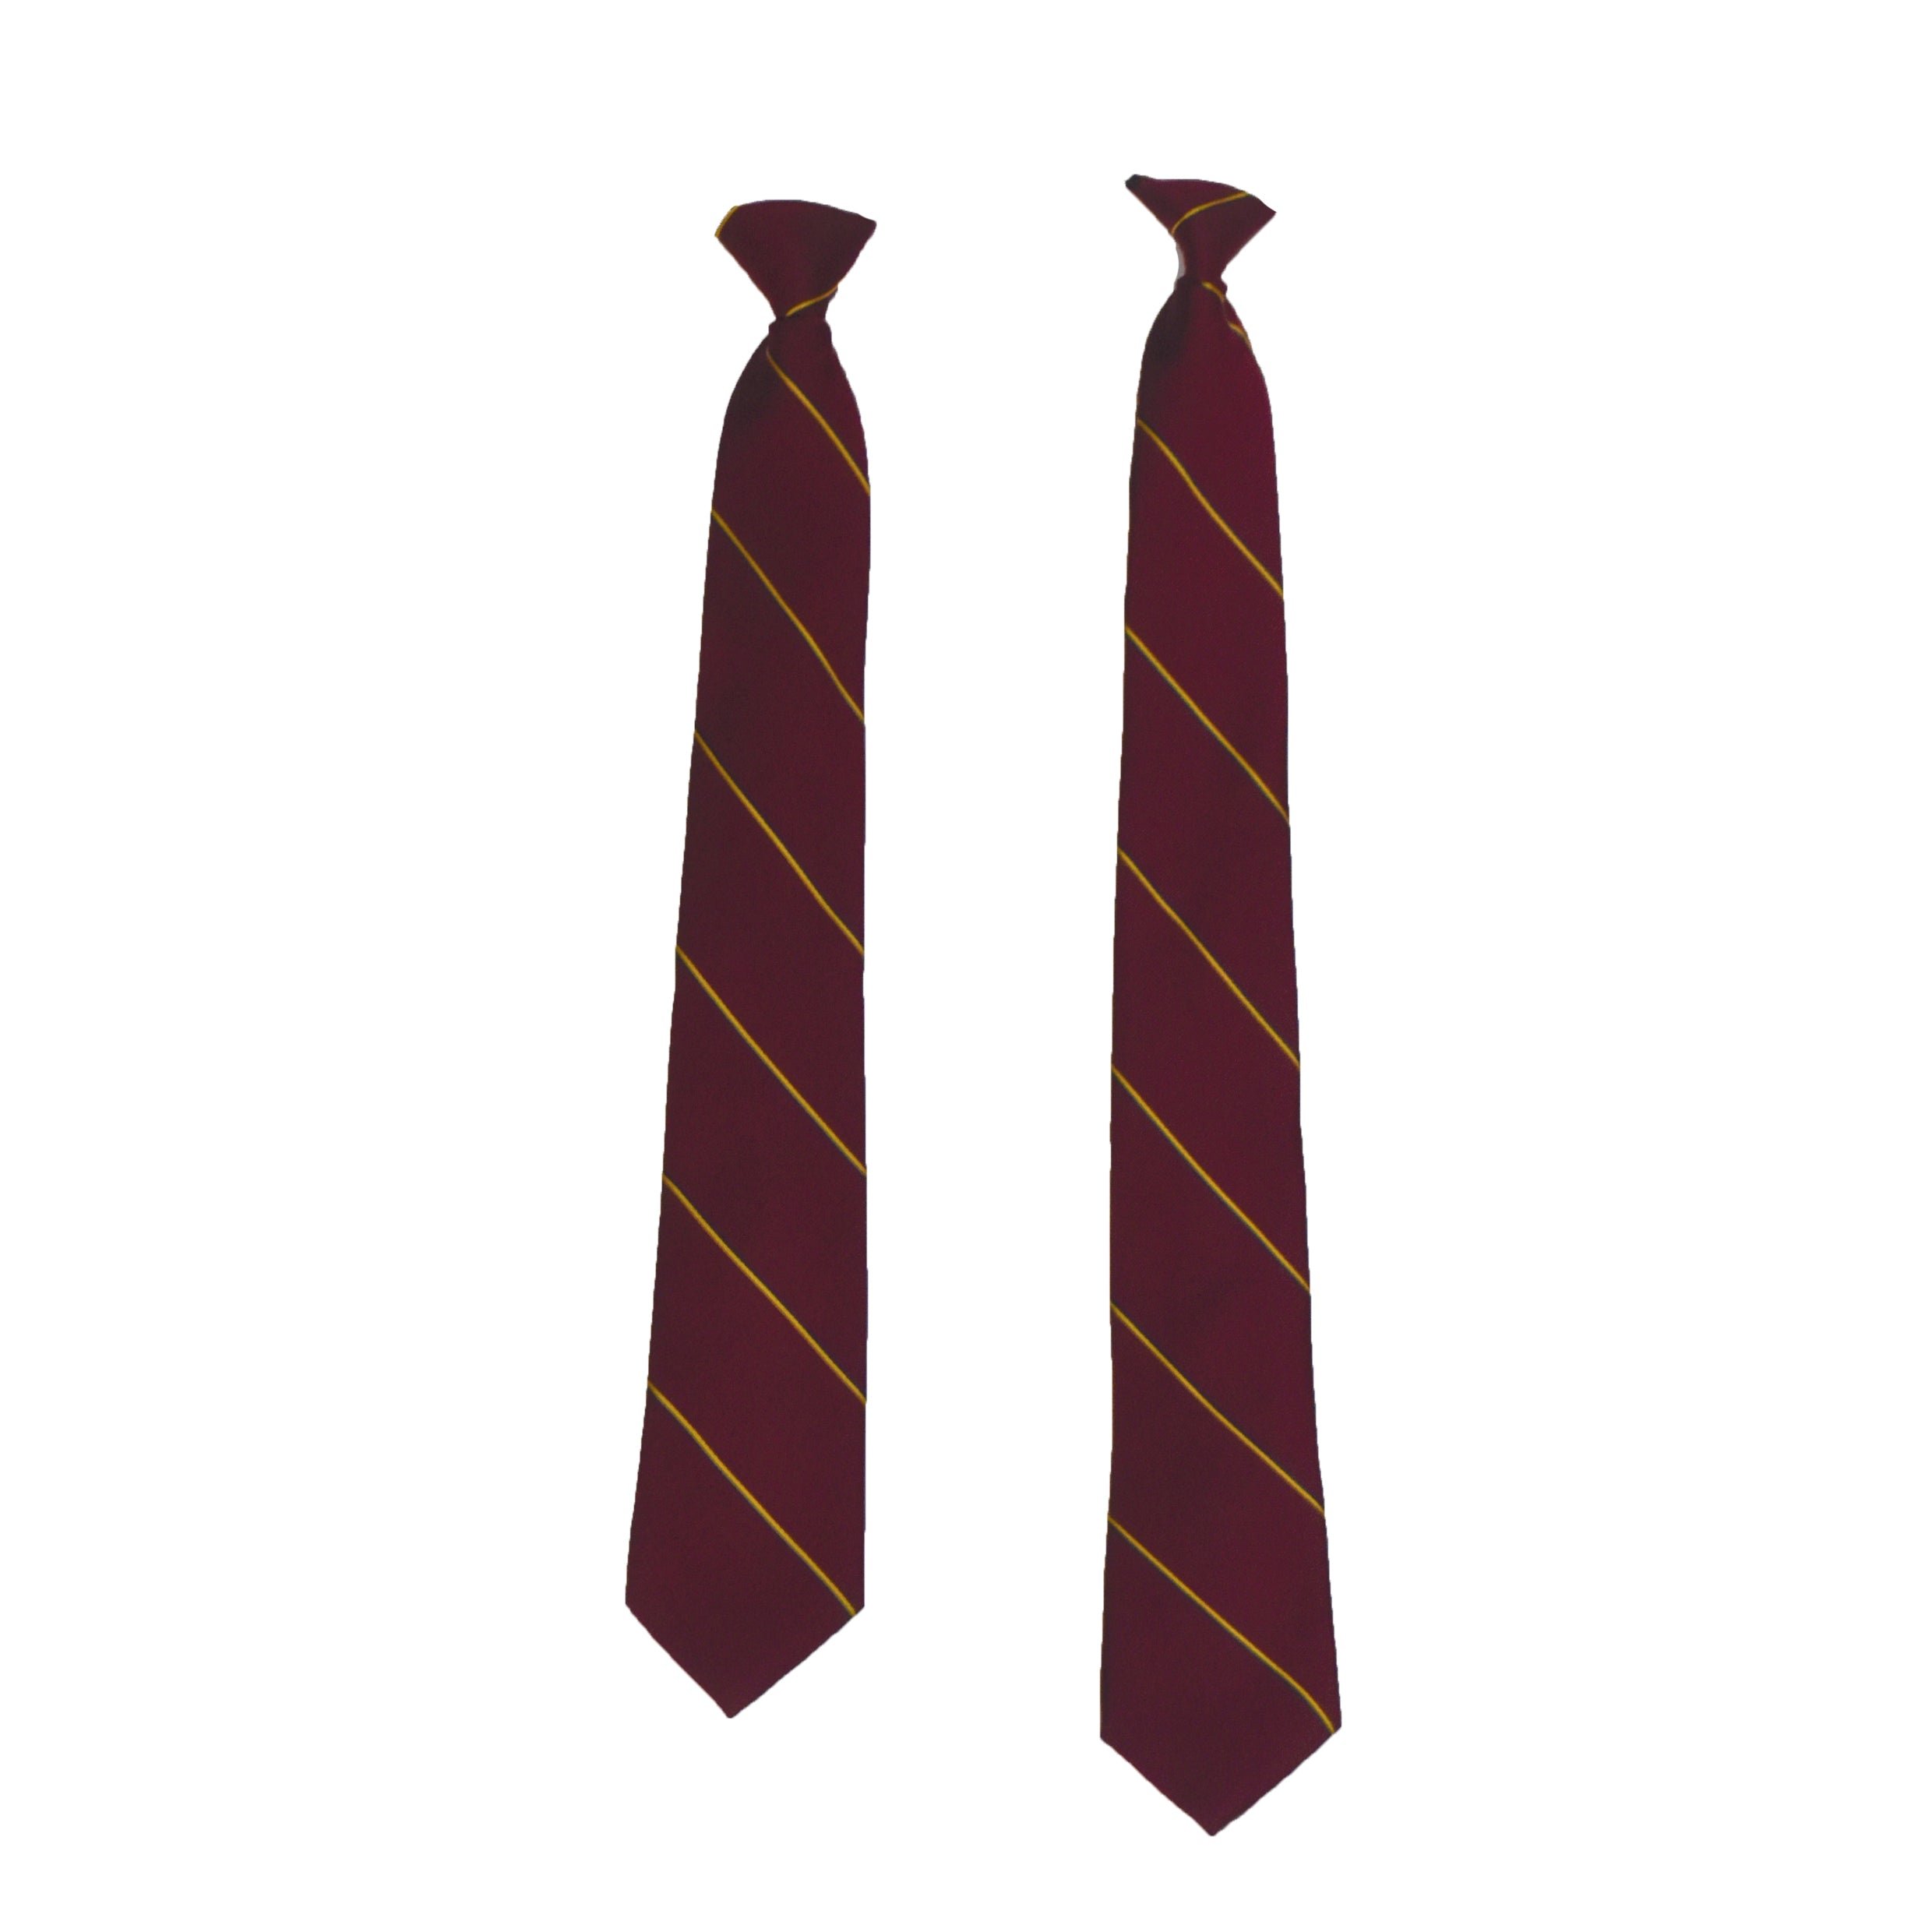 Middle/Senior School Tie